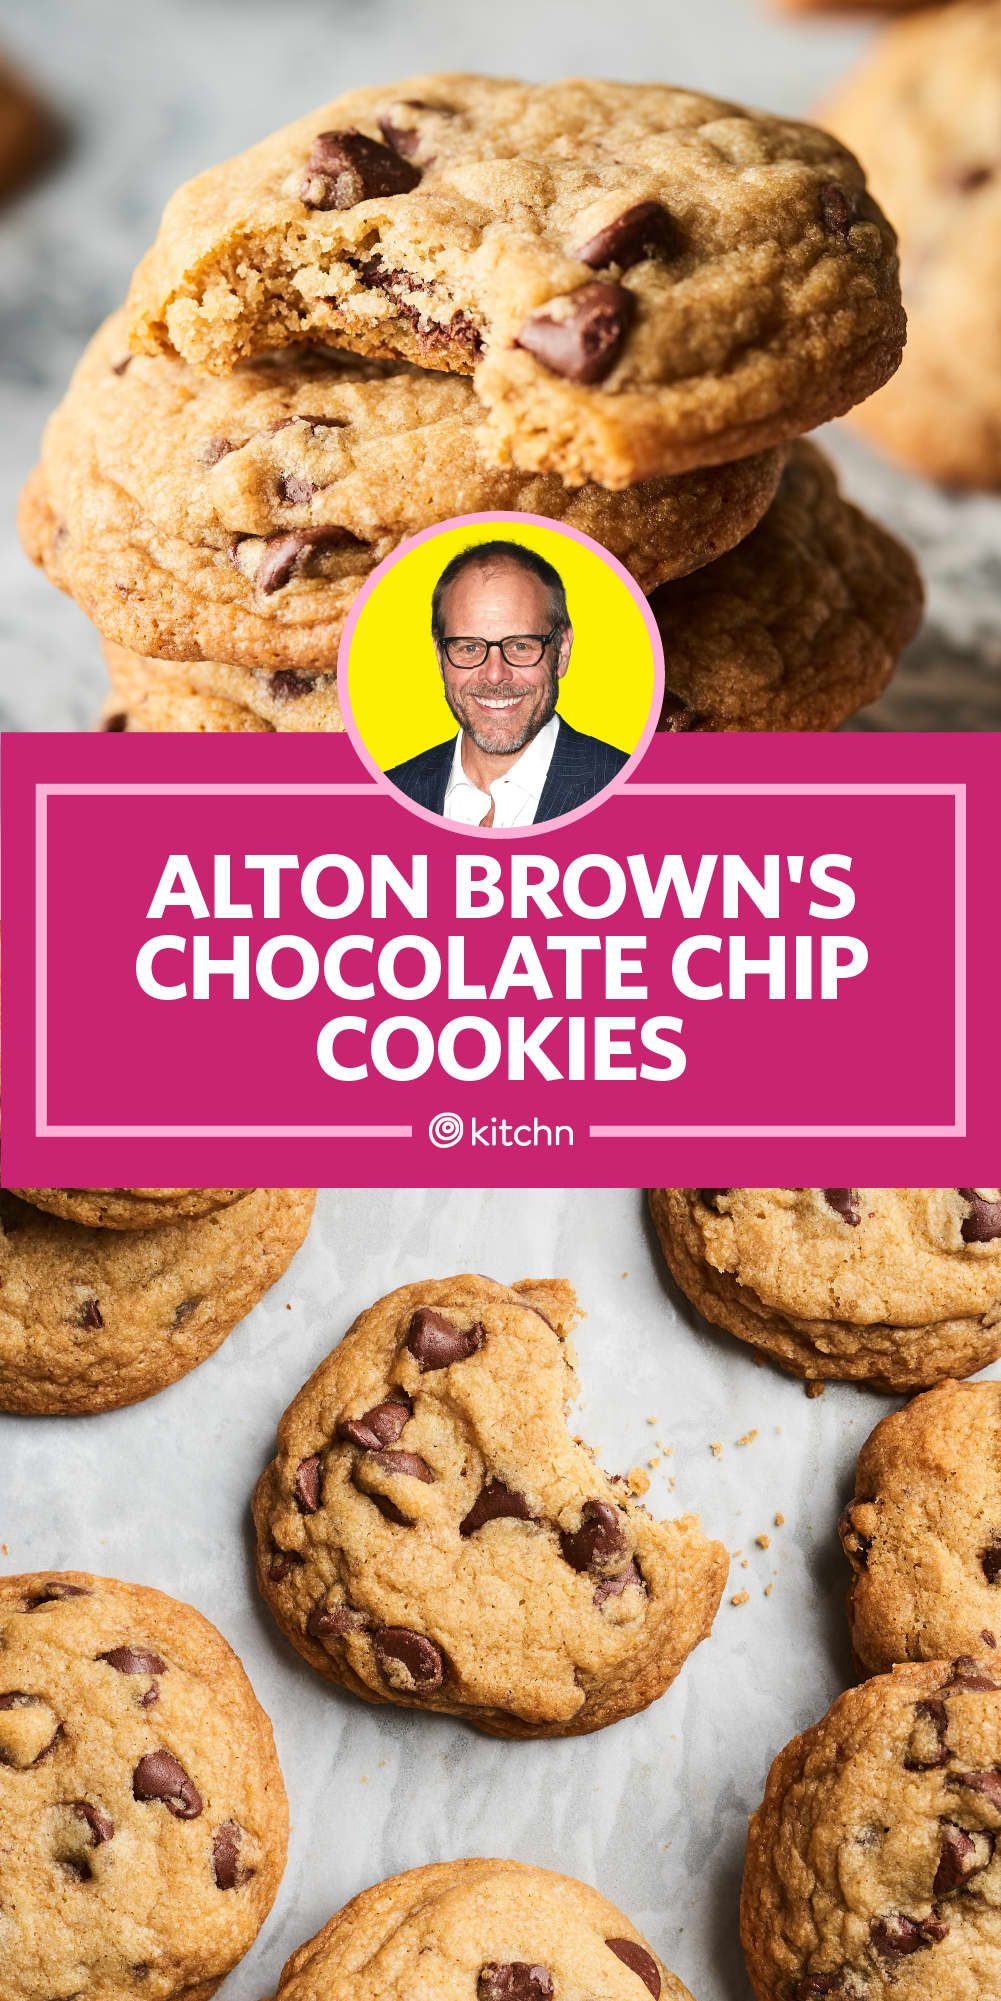 Alton Brown's Secret for a Perfectly Chewy Chocolate Chip Cookie #chocolatechipcookies